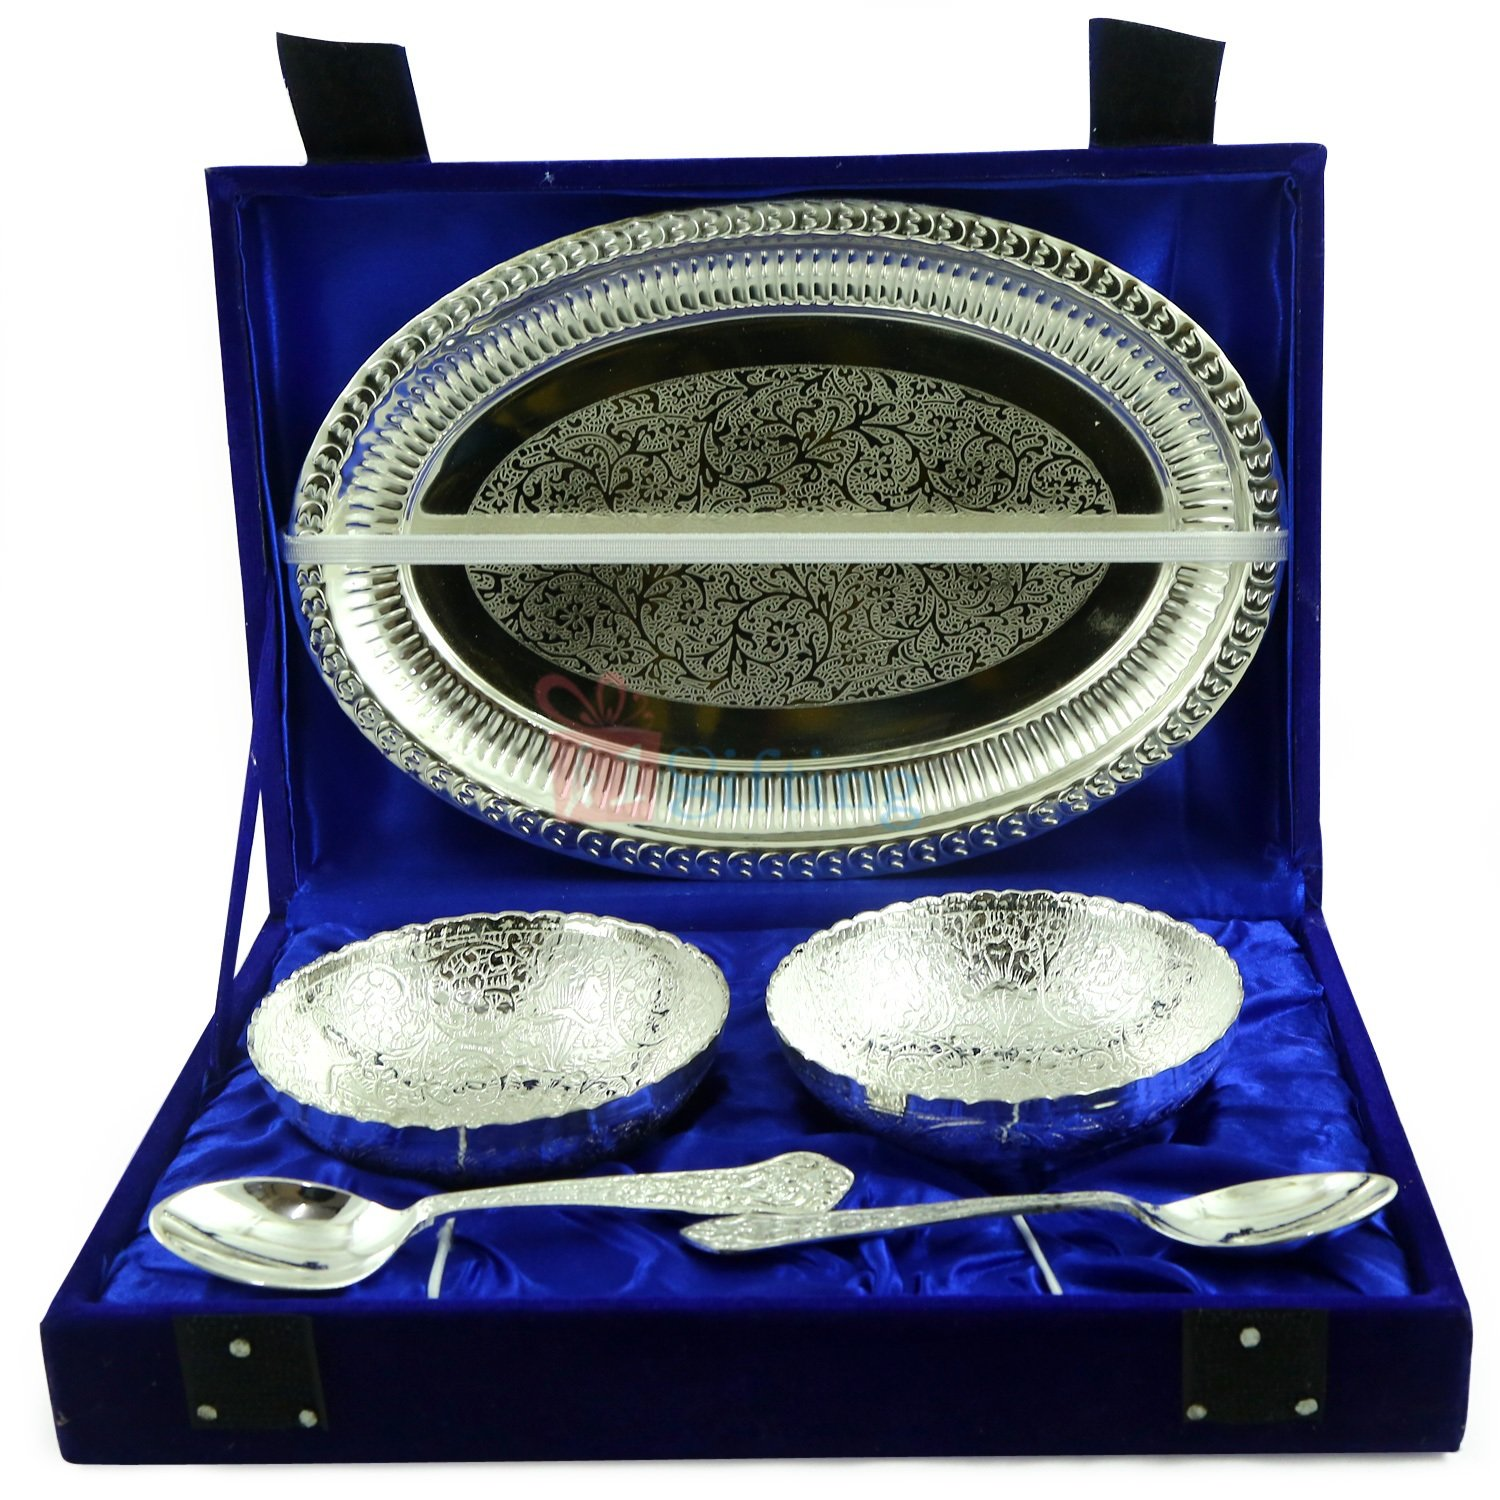 Brass Silver Bowl Pair with Oval Designer Tray and Spoons